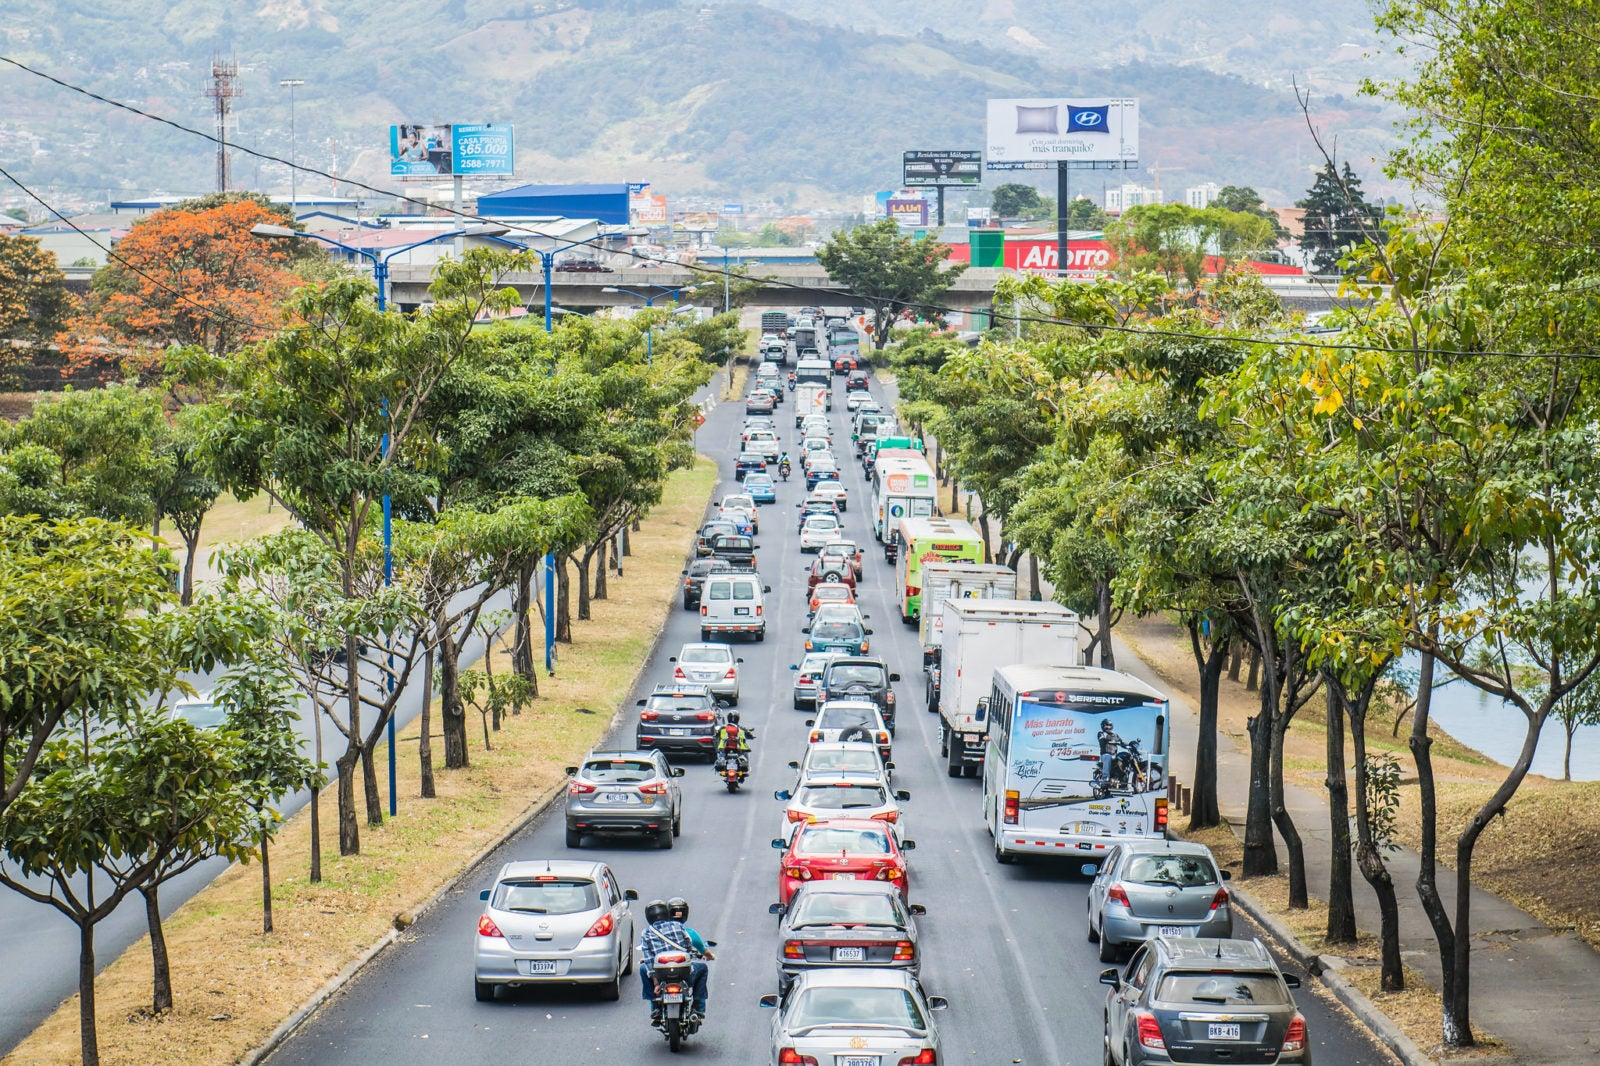 Costa Rica reaffirms its leadership in electric mobility